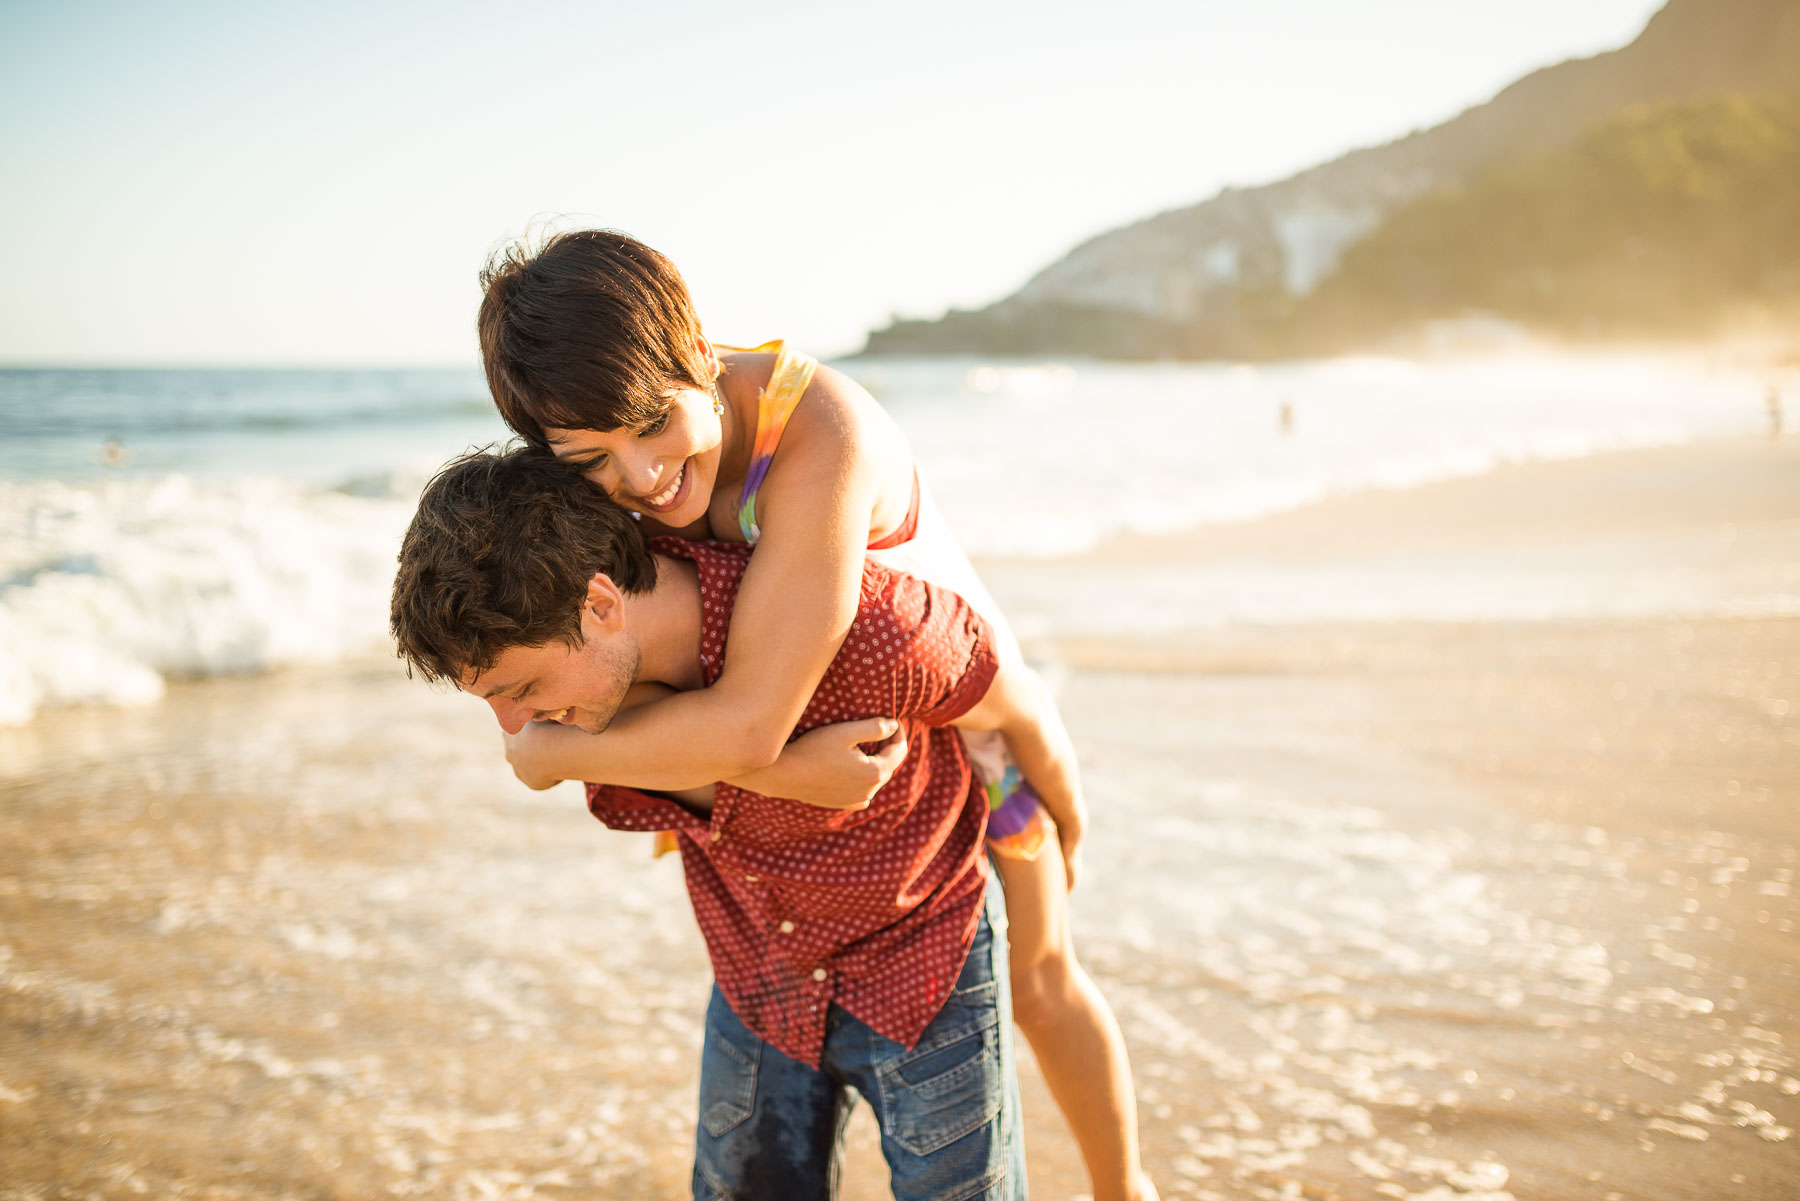 young-couple-piggyback-hugging-together-love-beach-holiday-rio-de-janeiro-brazil-28